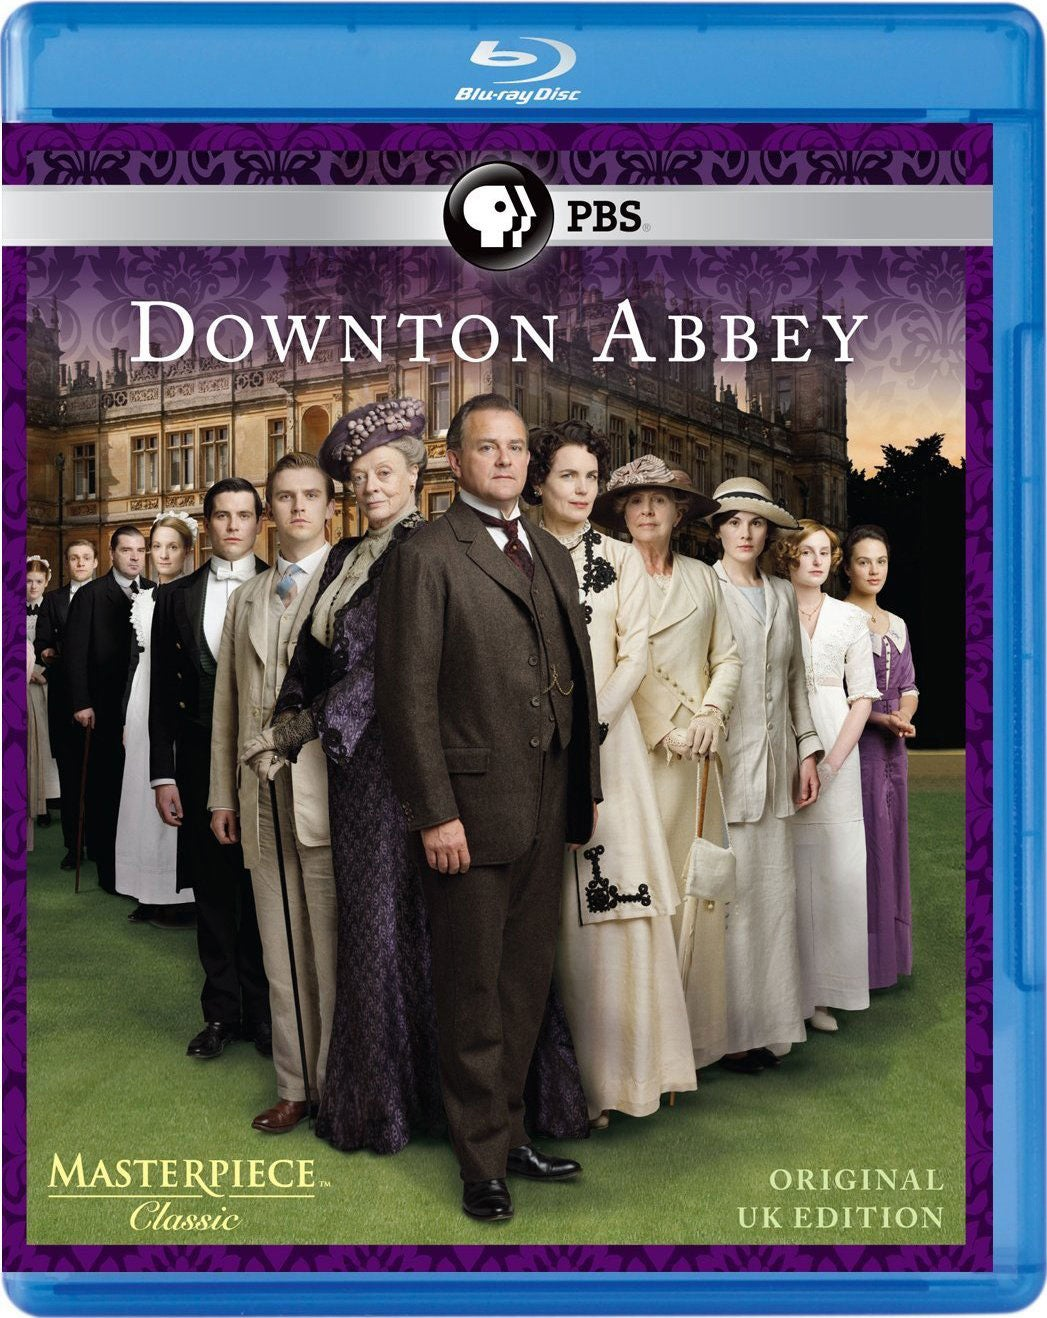 Masterpiece Classic: Downton Abbey (Blu-ray Disc)